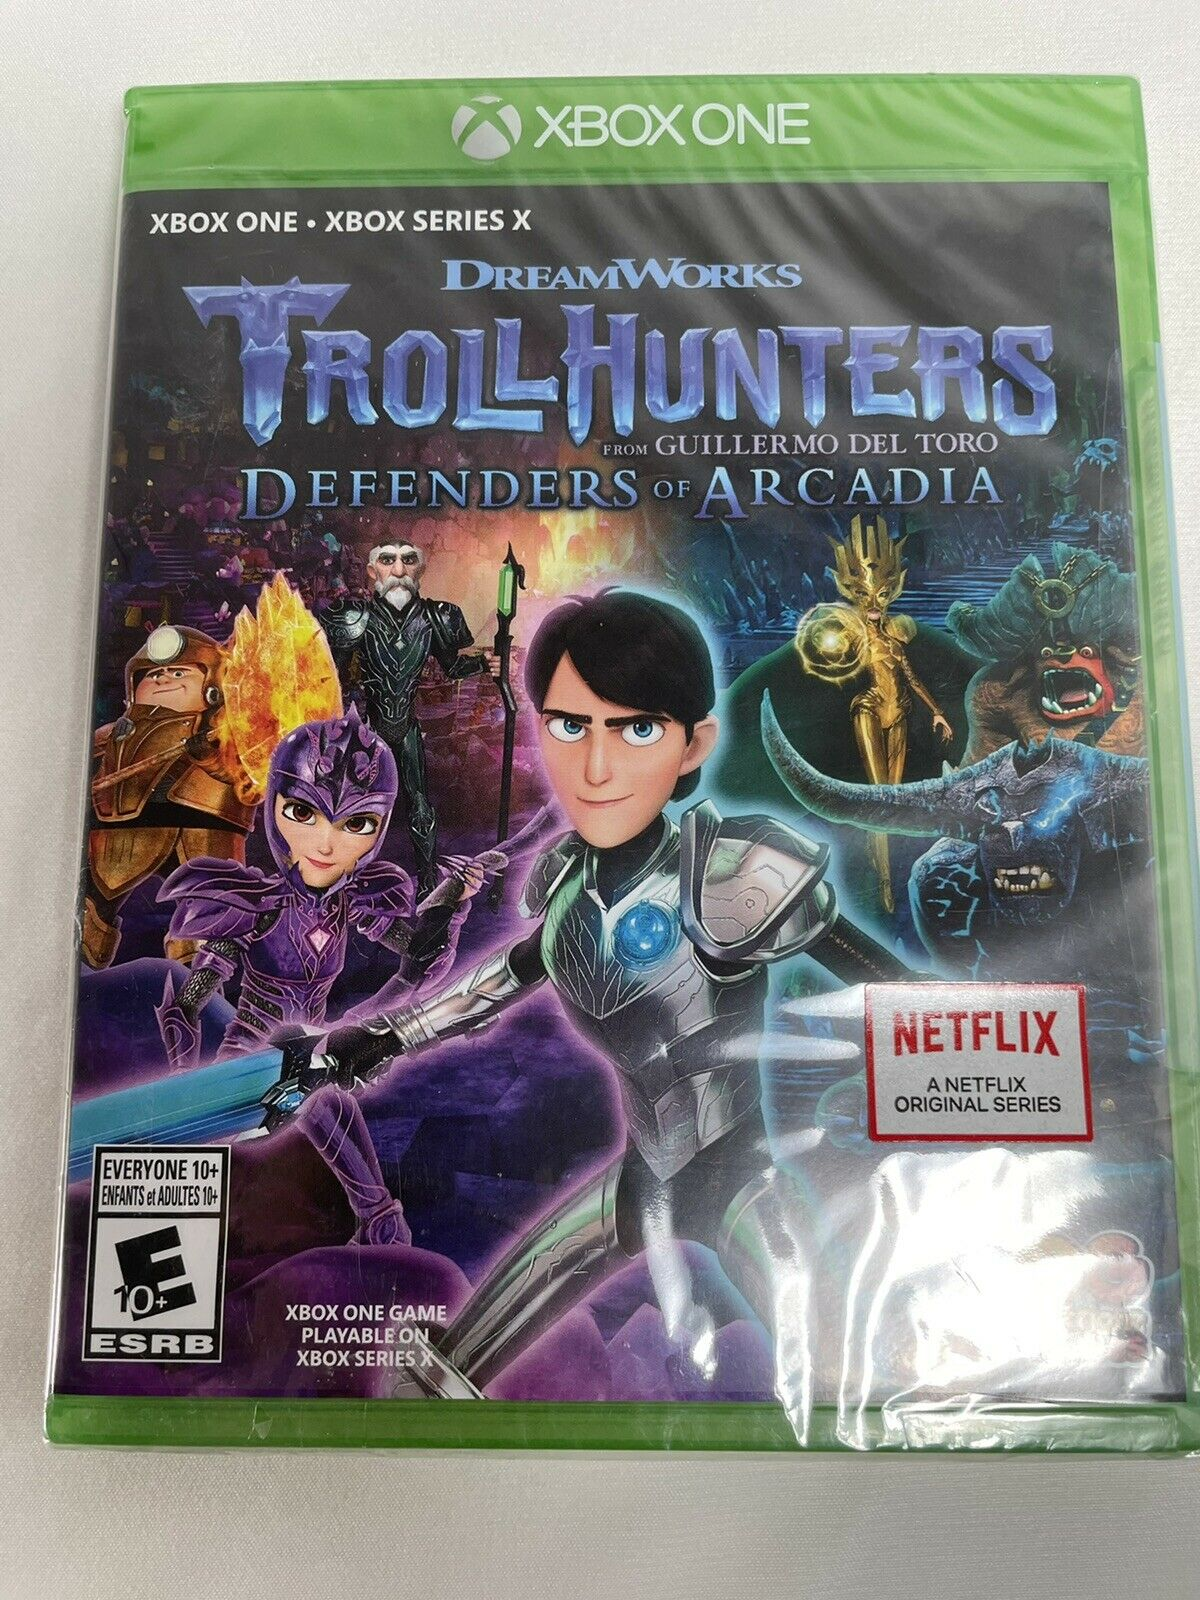 Xbox one video game Dreamworks Troll Hunters defenders of Arcadia factory sealed